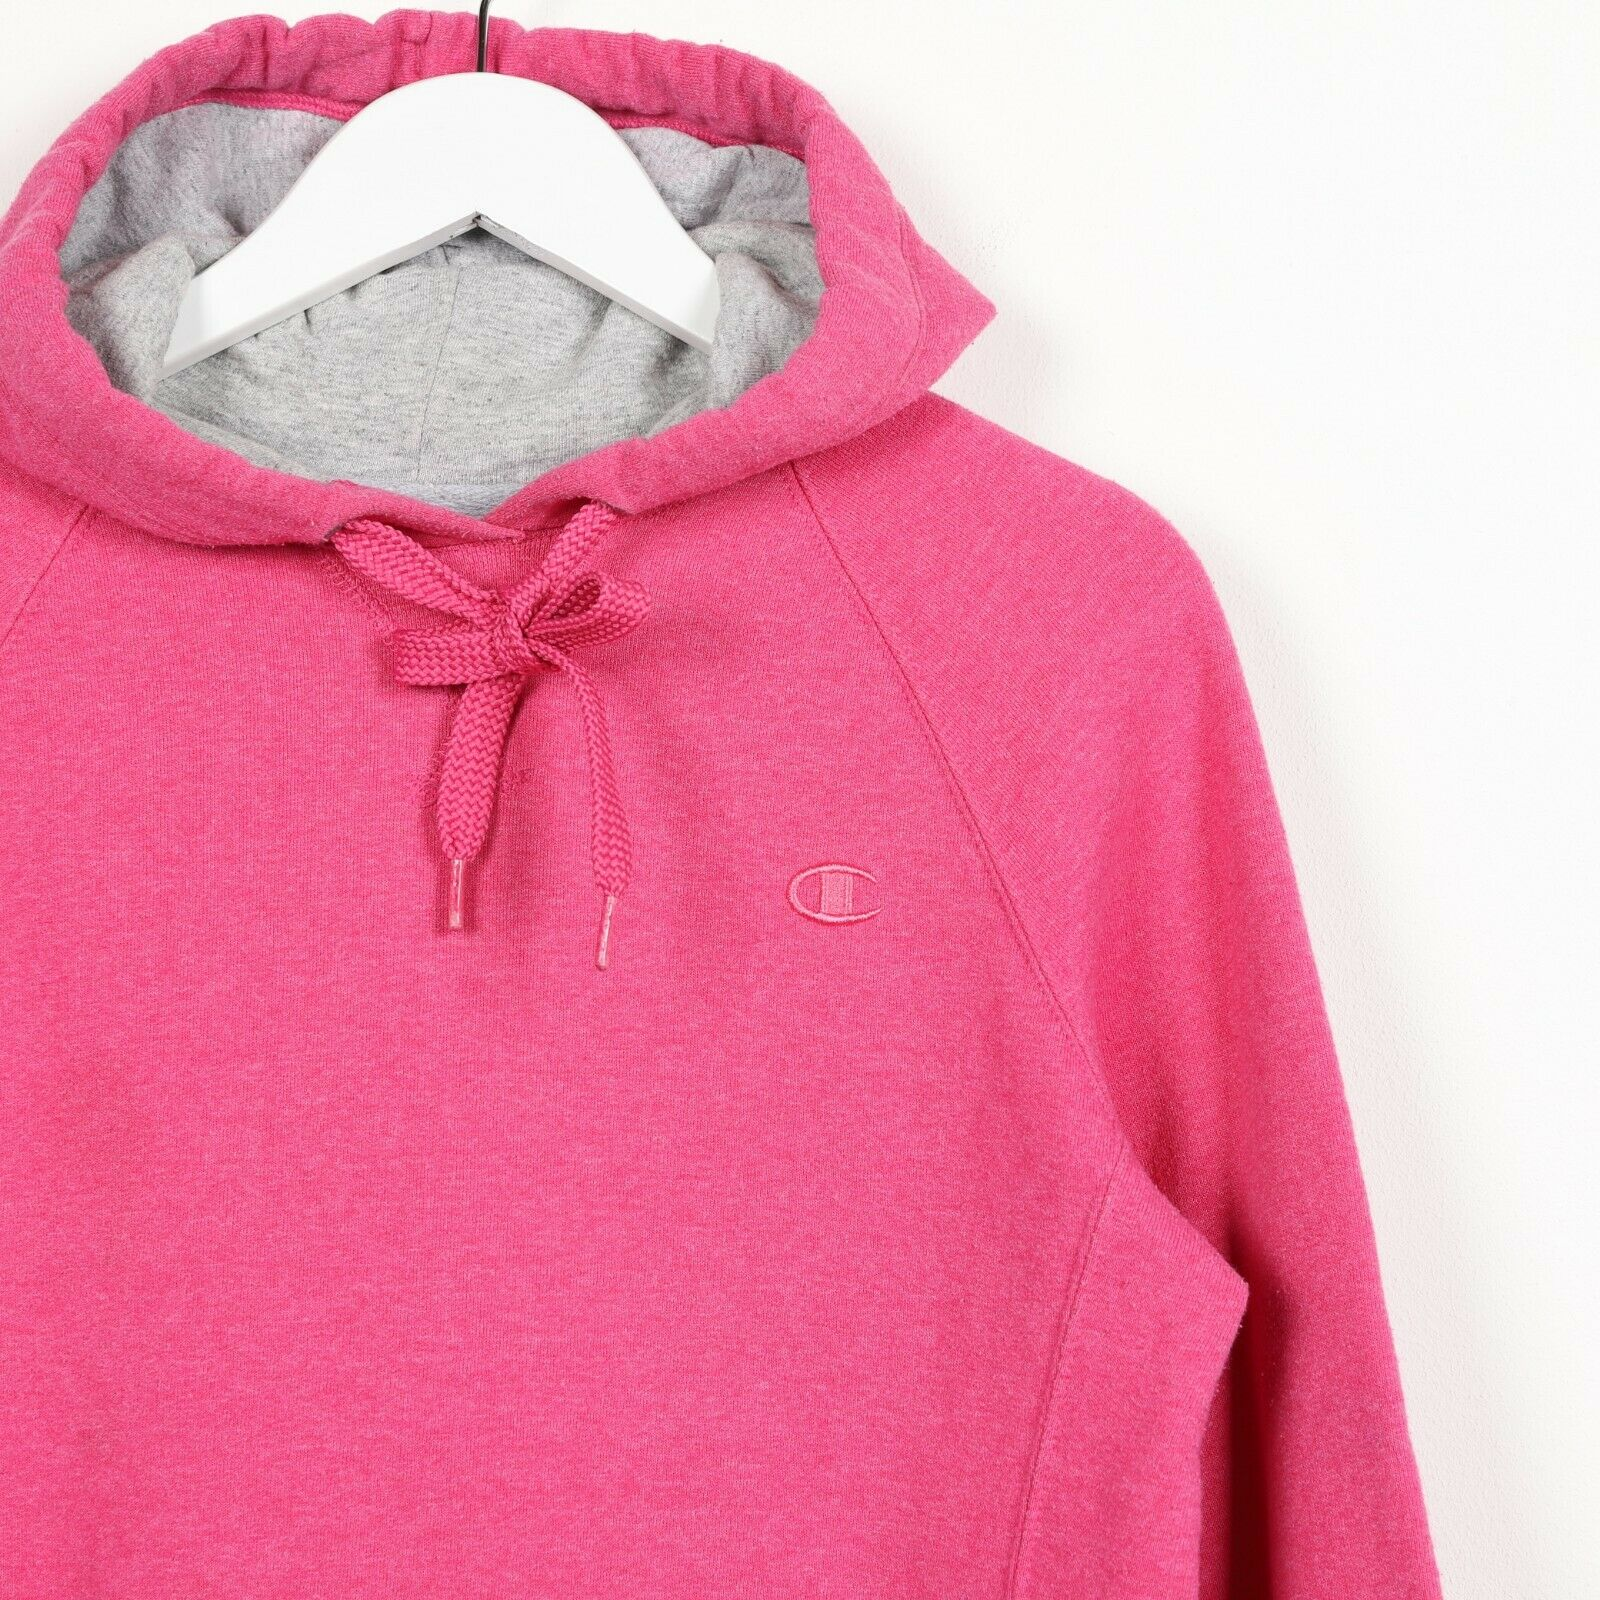 Vintage Women's CHAMPION Small Logo Hoodie Sweatshirt Pink | Medium M